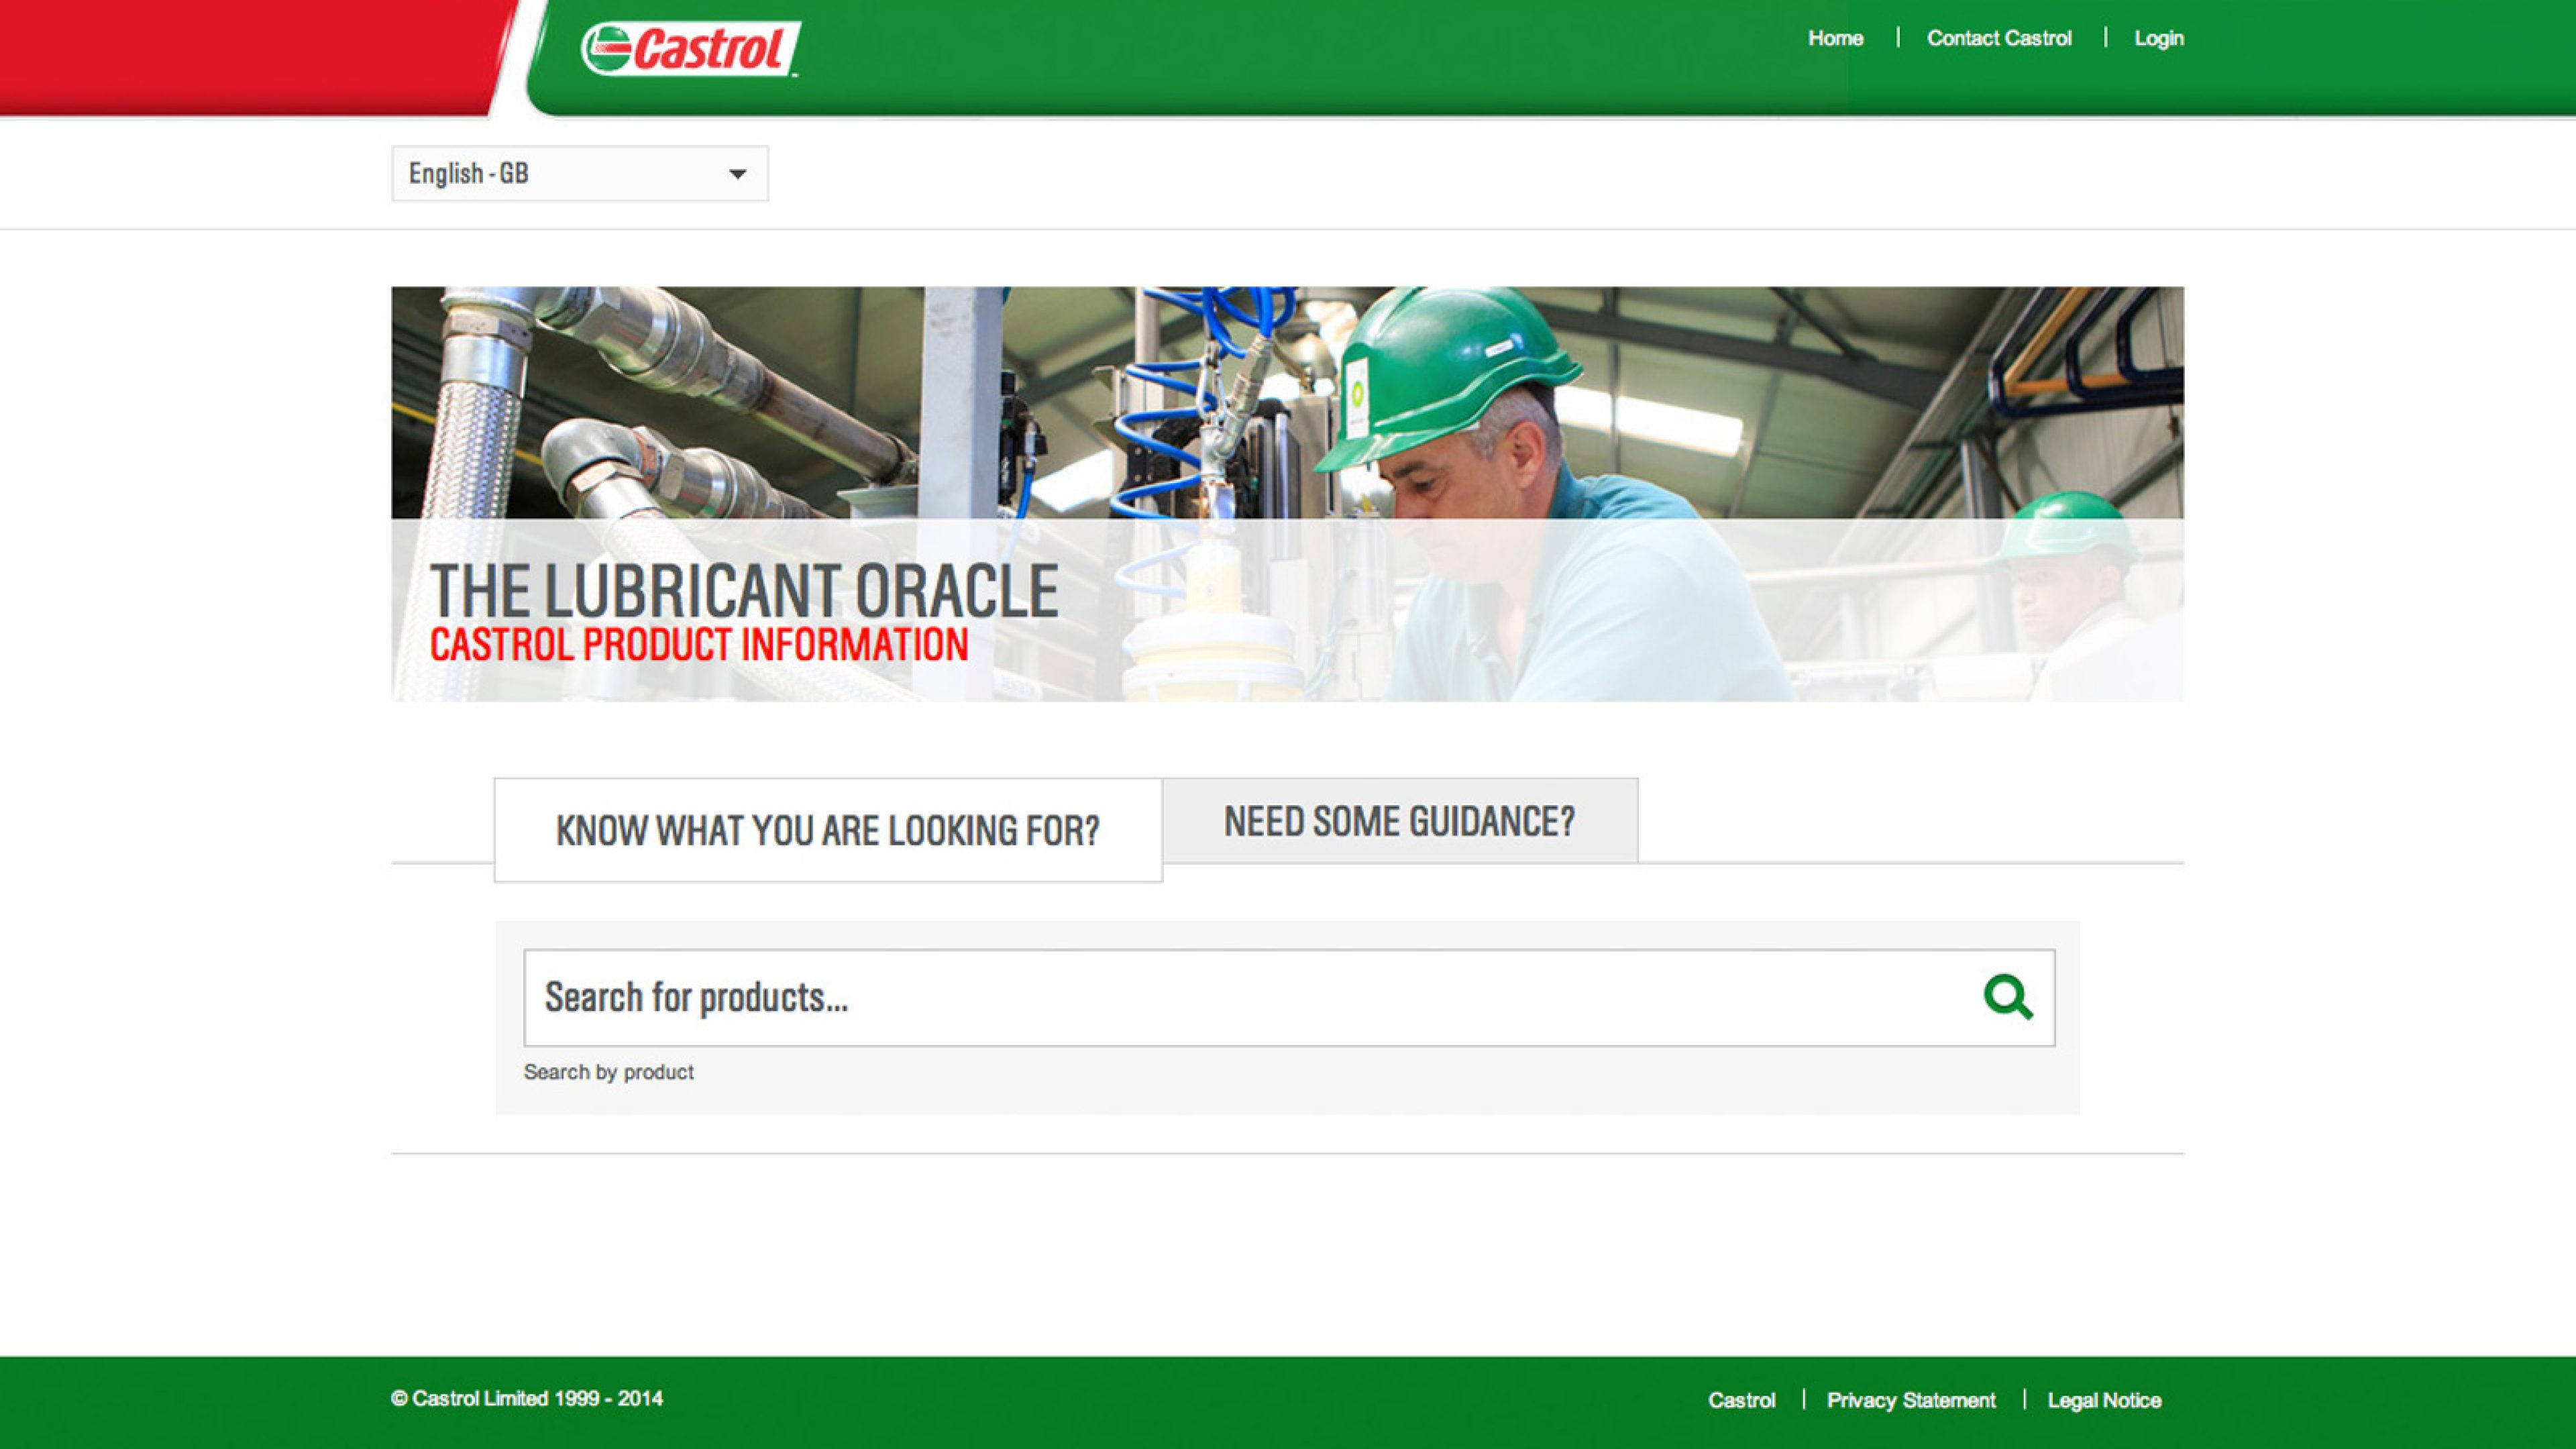 The Lubricant Oracle